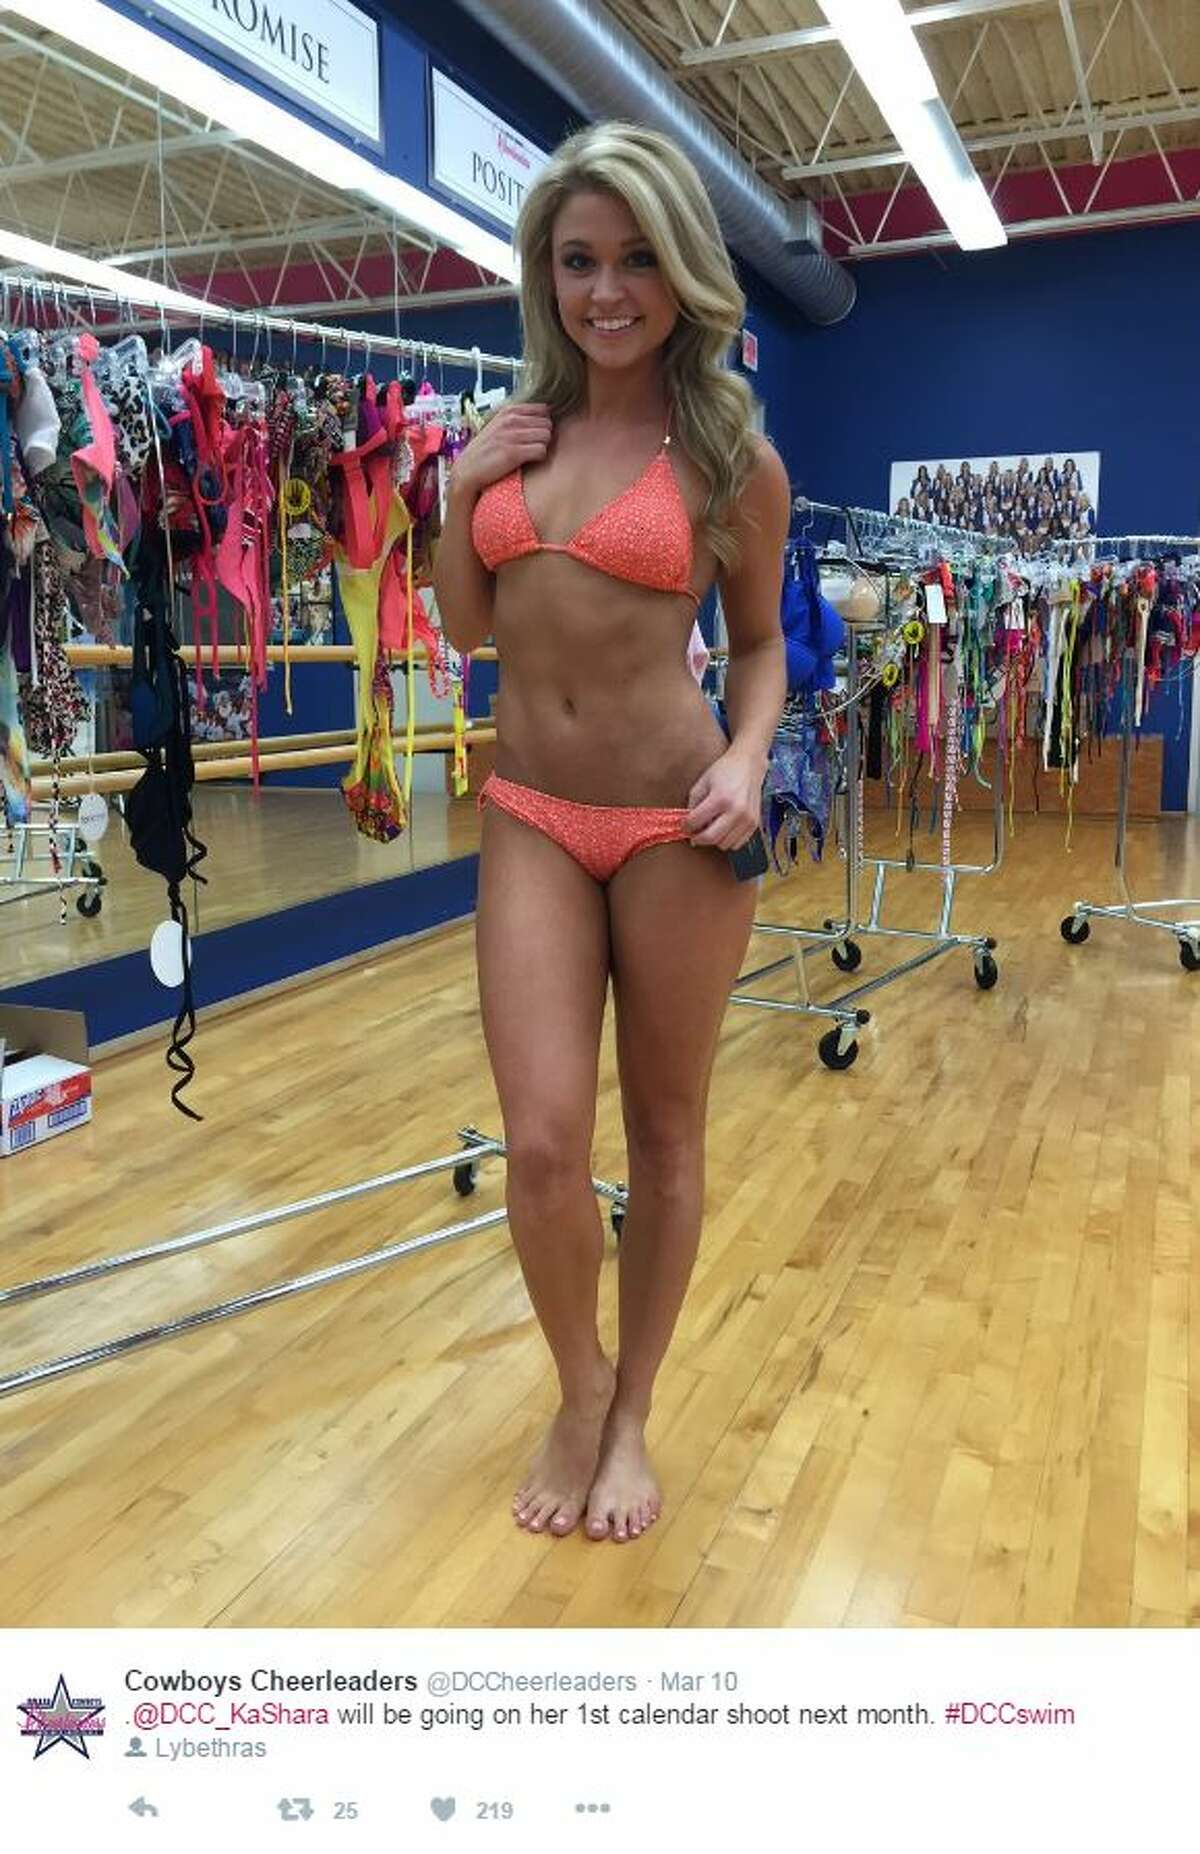 The Dallas Cowboys Cheerleaders were getting prepped and fitted March 10, 2016, for this year's swimsuit calendar.